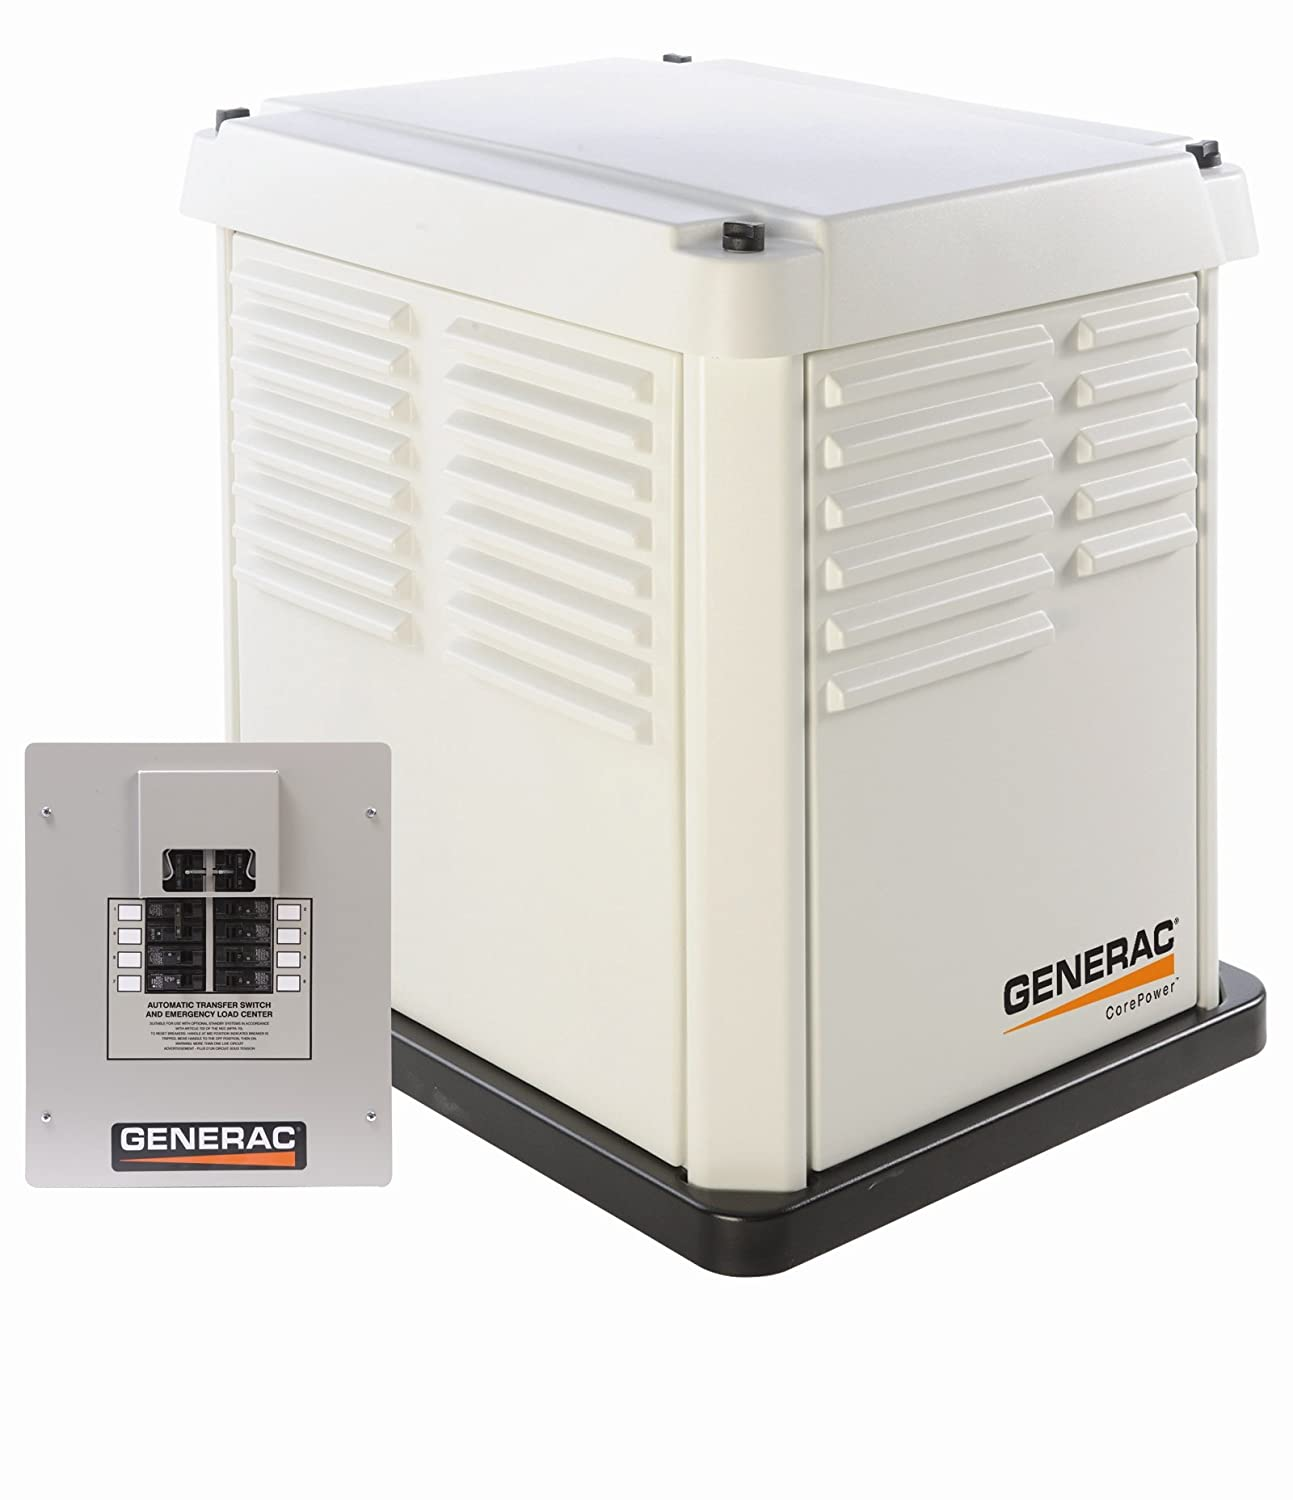 Generac CorePower Series 5837 7 000 Watt Standby Generator Review